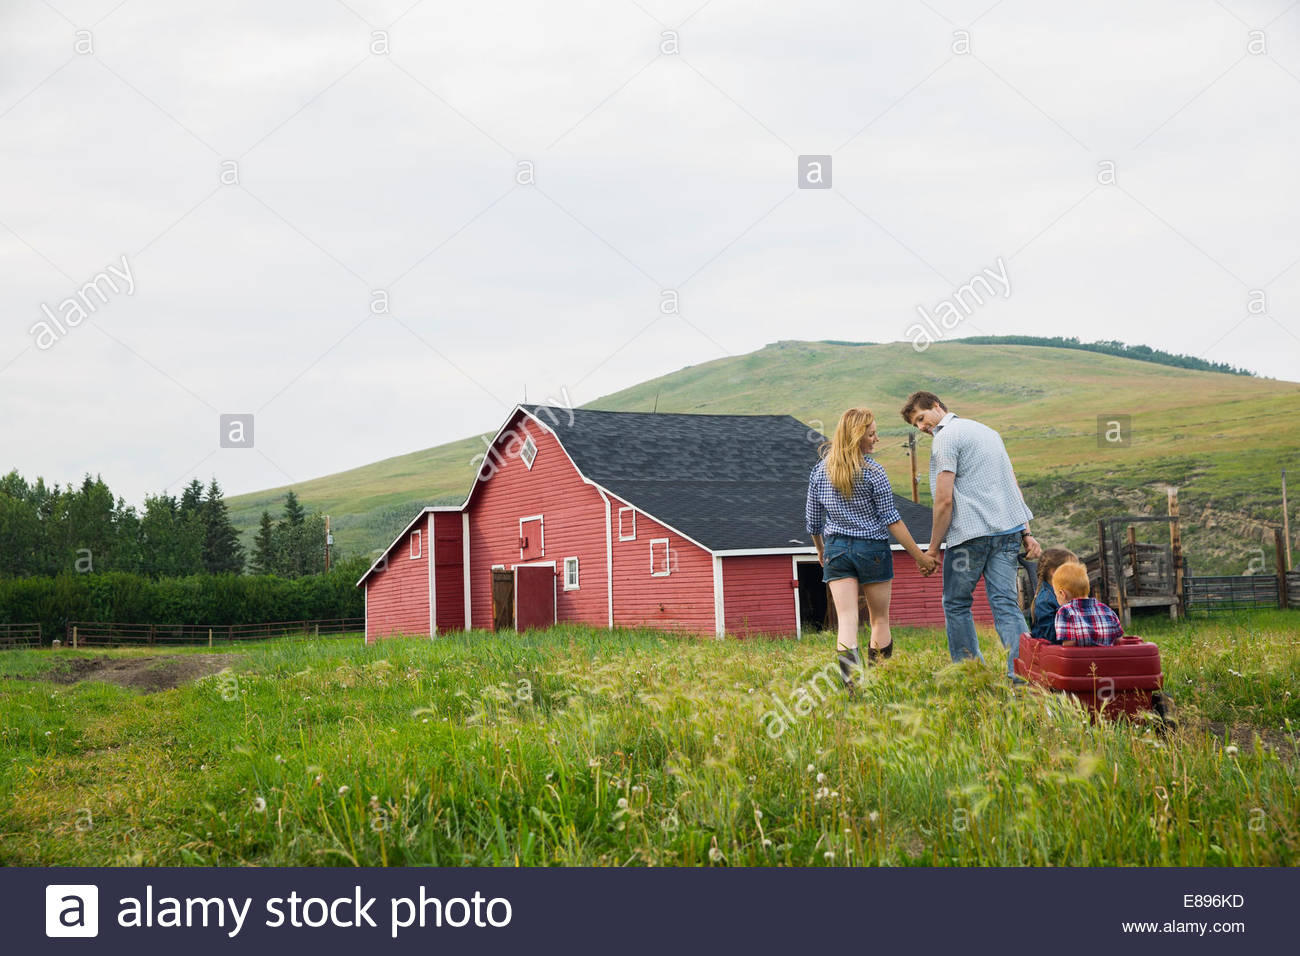 Parents pulling children in wagon outside barn - Stock Image